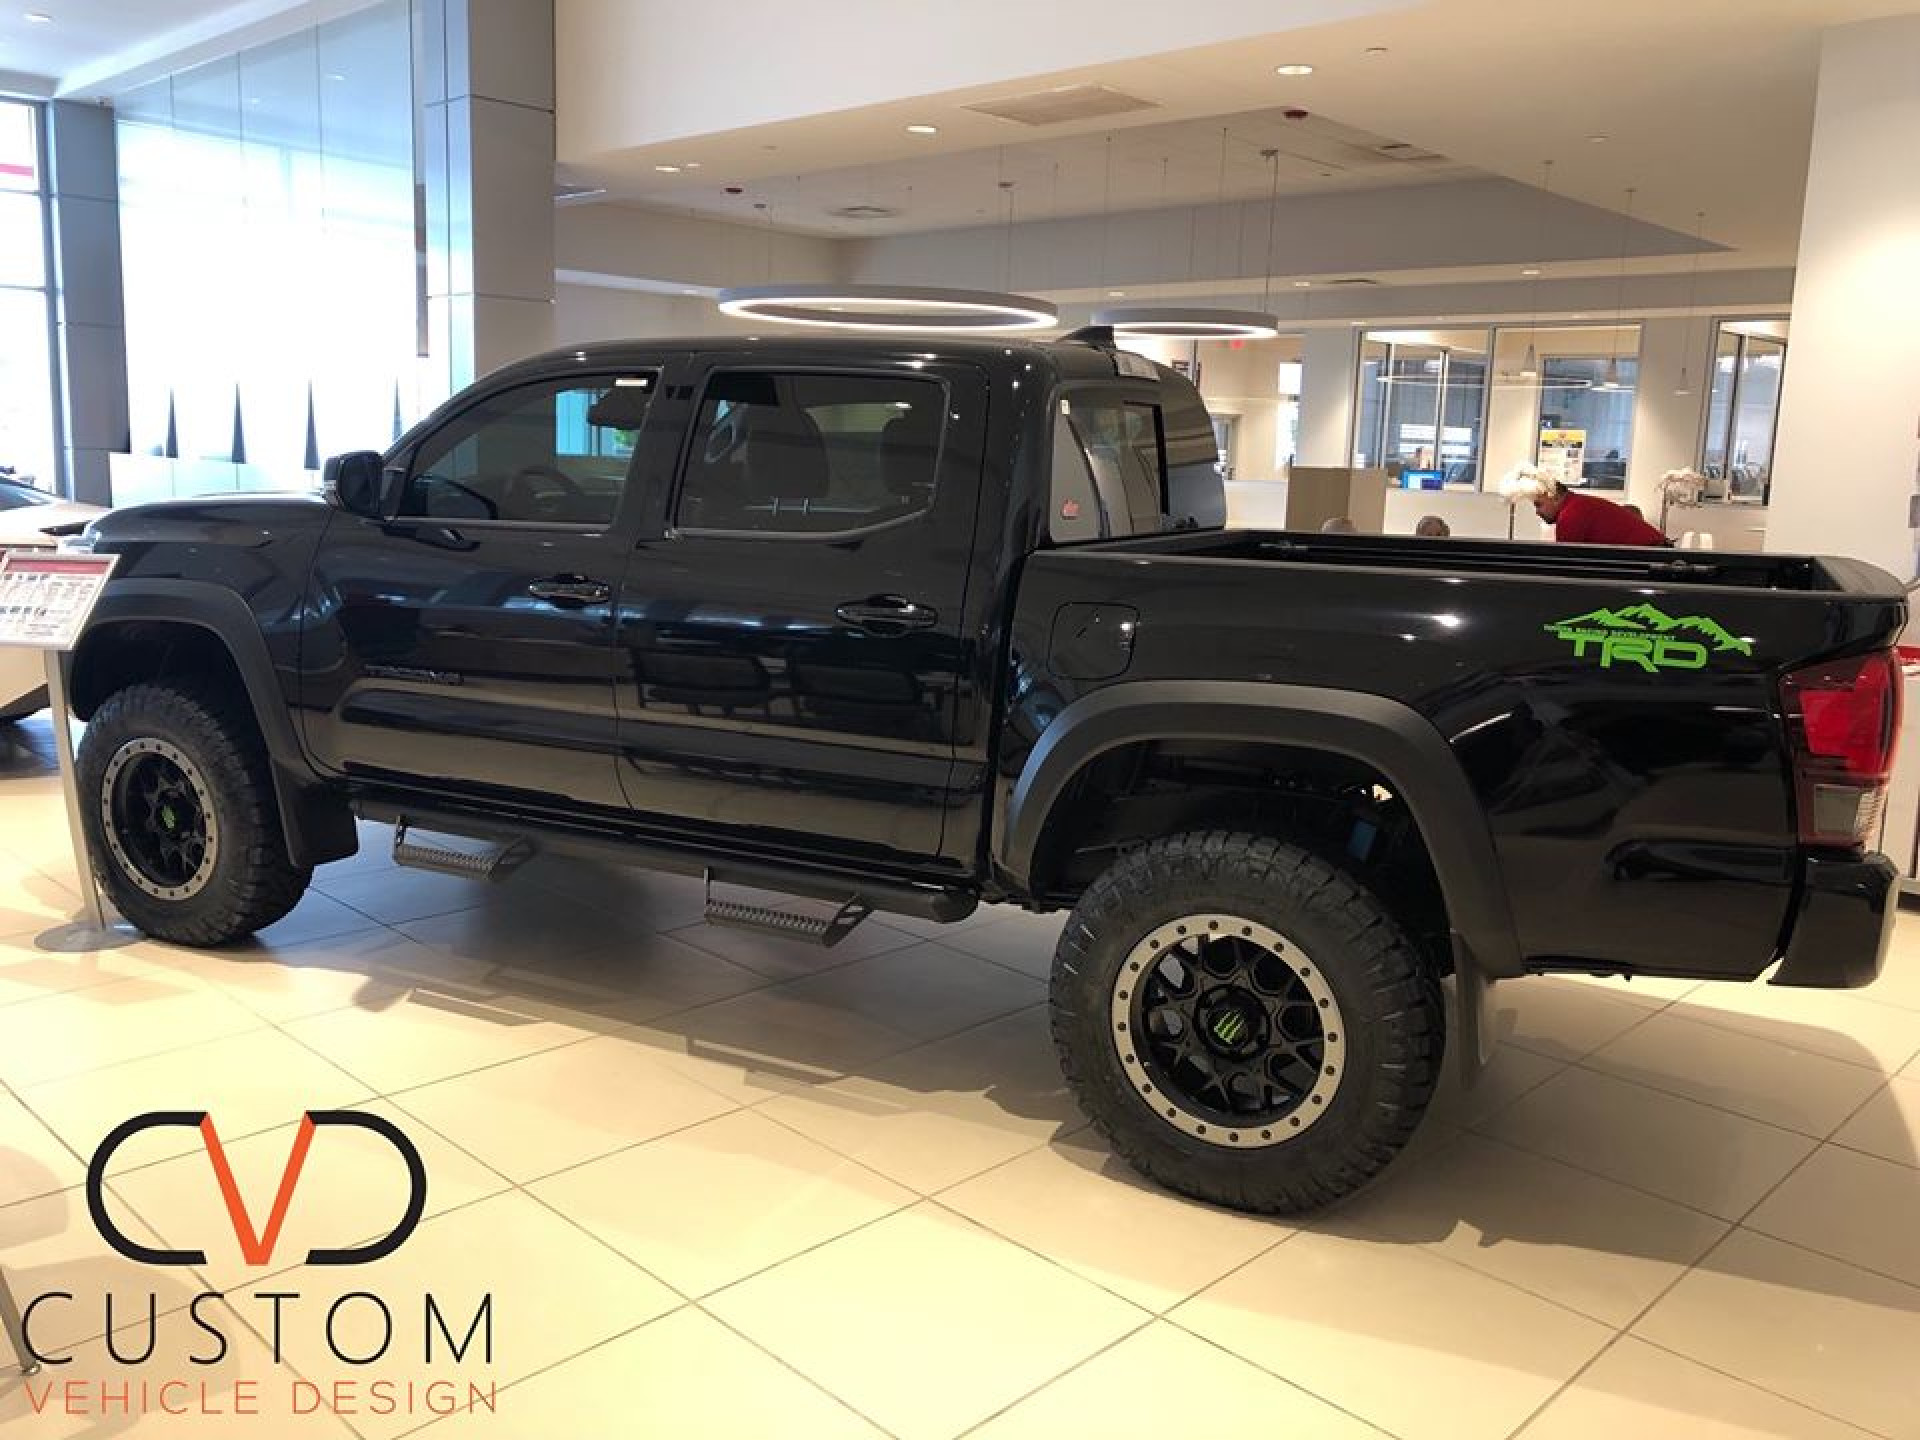 Toyota Tacoma customized by CVD